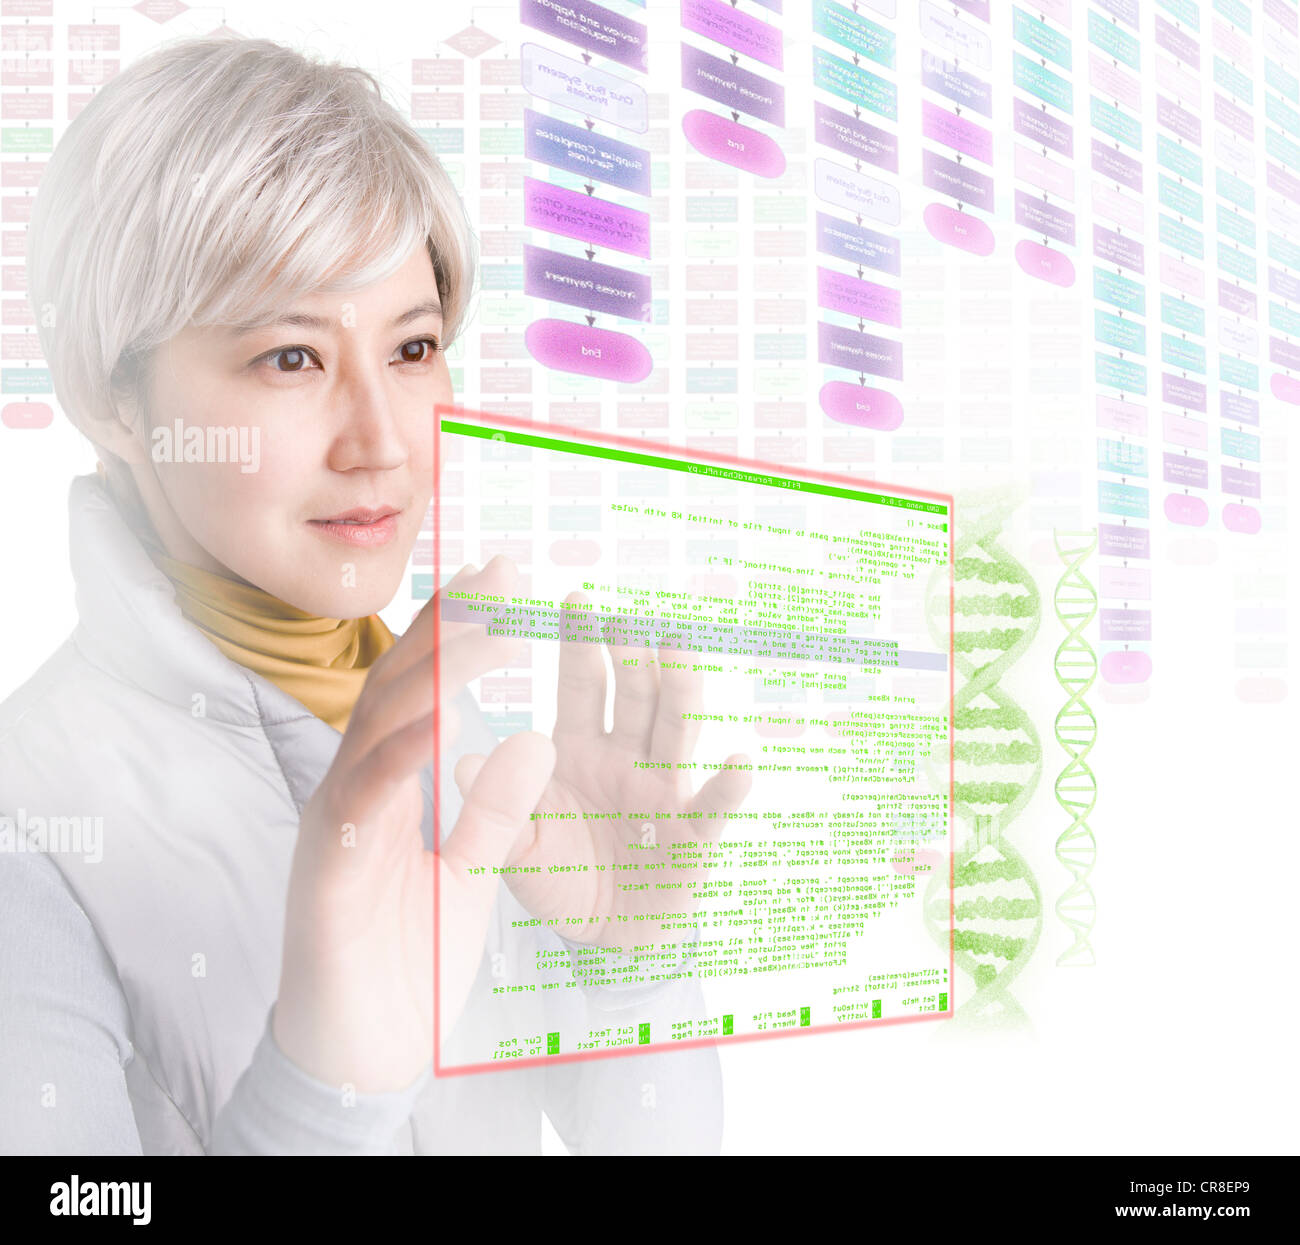 Woman interacting with holographic screens - Stock Image